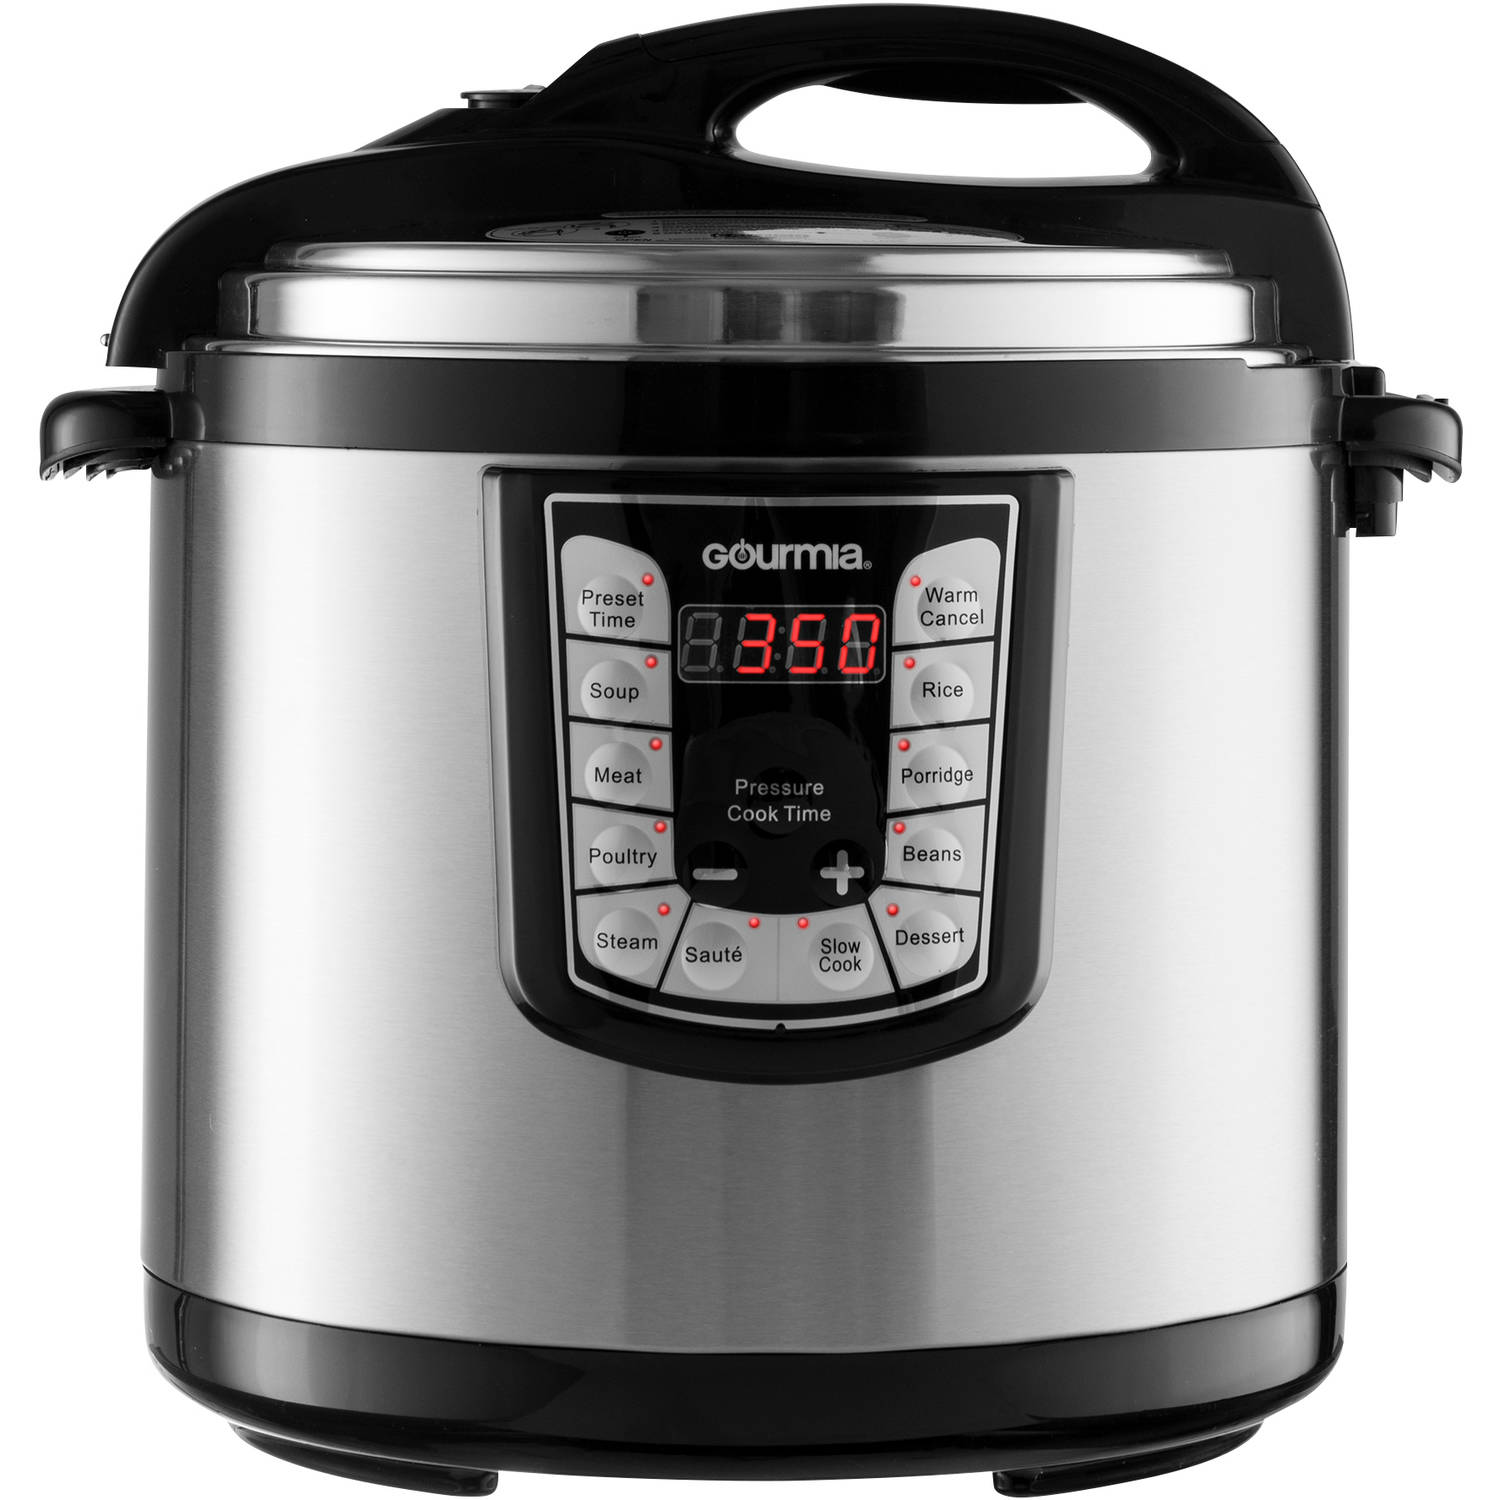 Gourmia GPC1200 Stainless Steel 12-Quart Smart Pot Electric Digital Multifunction Pressure Cooker with 13 Programmable Cooking Modes